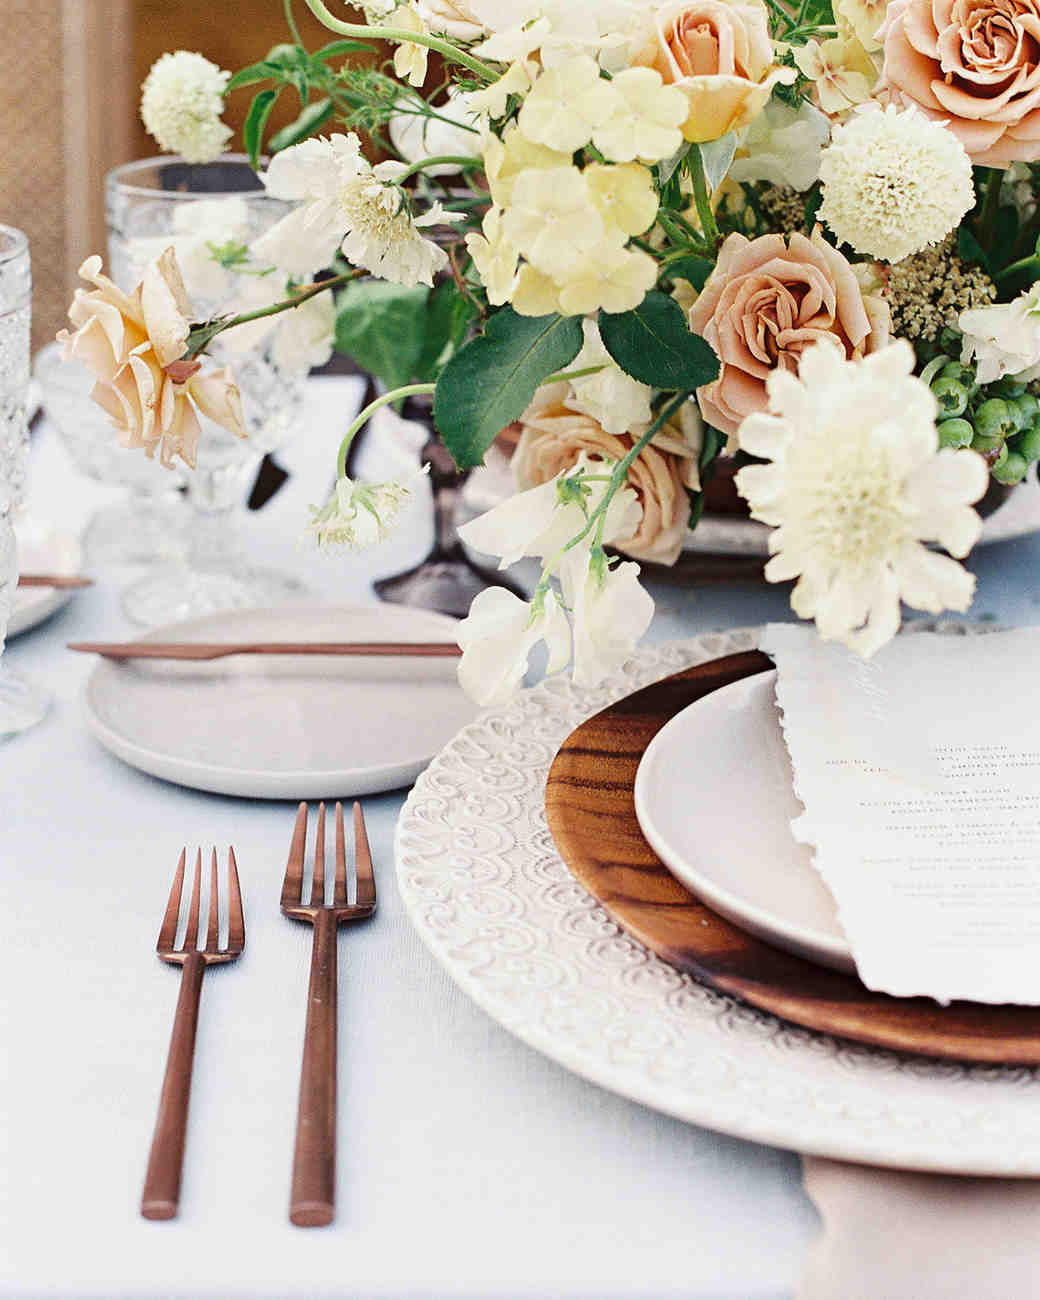 eyelet lace inspired place setting